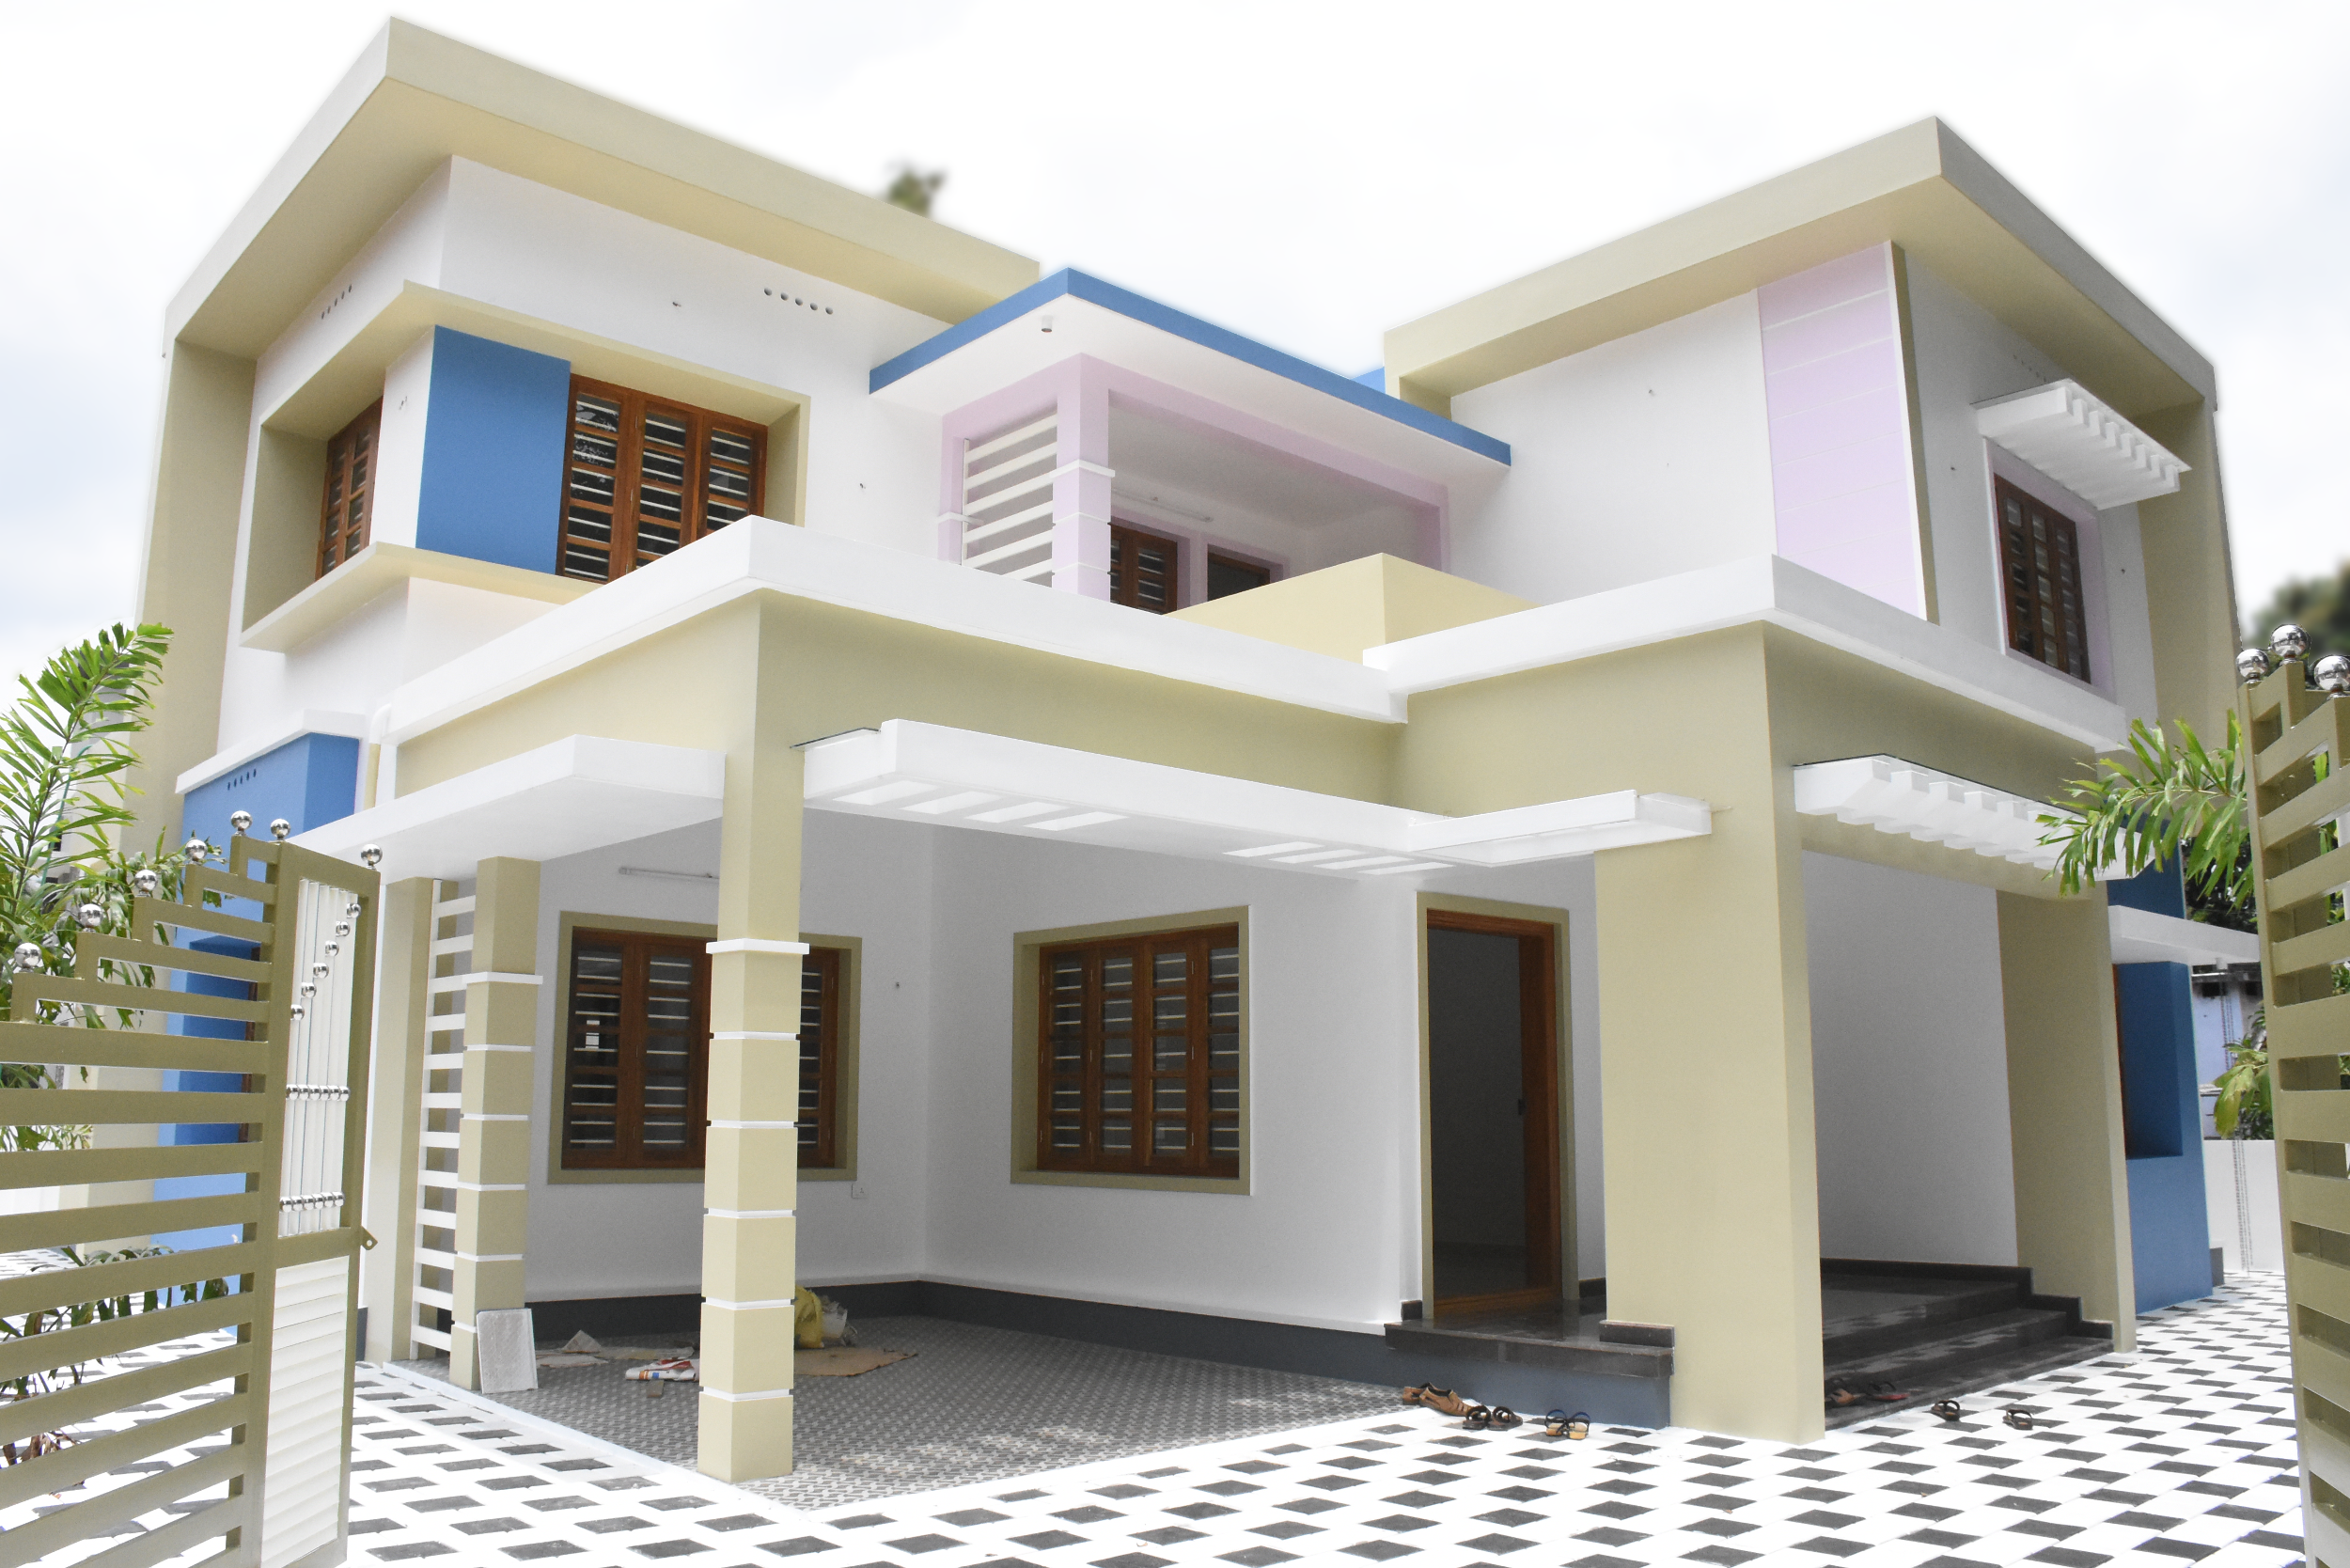 house designs, beautiful house models, house architectures, house ...